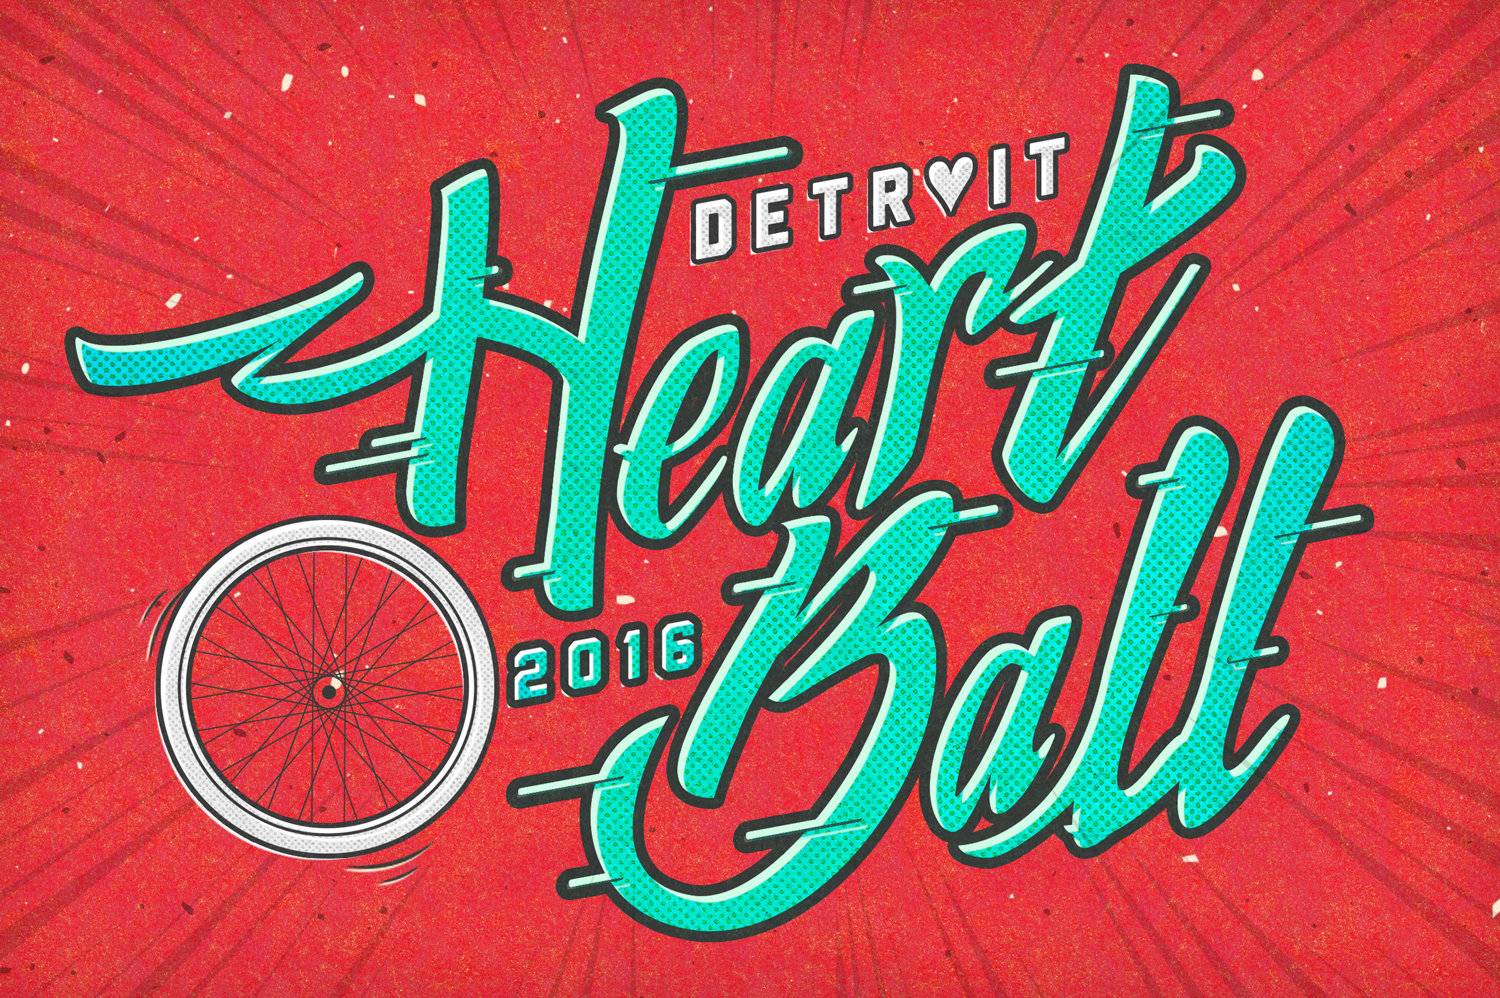 Stay tuned for additional events coming soon to benefit the American Heart Association